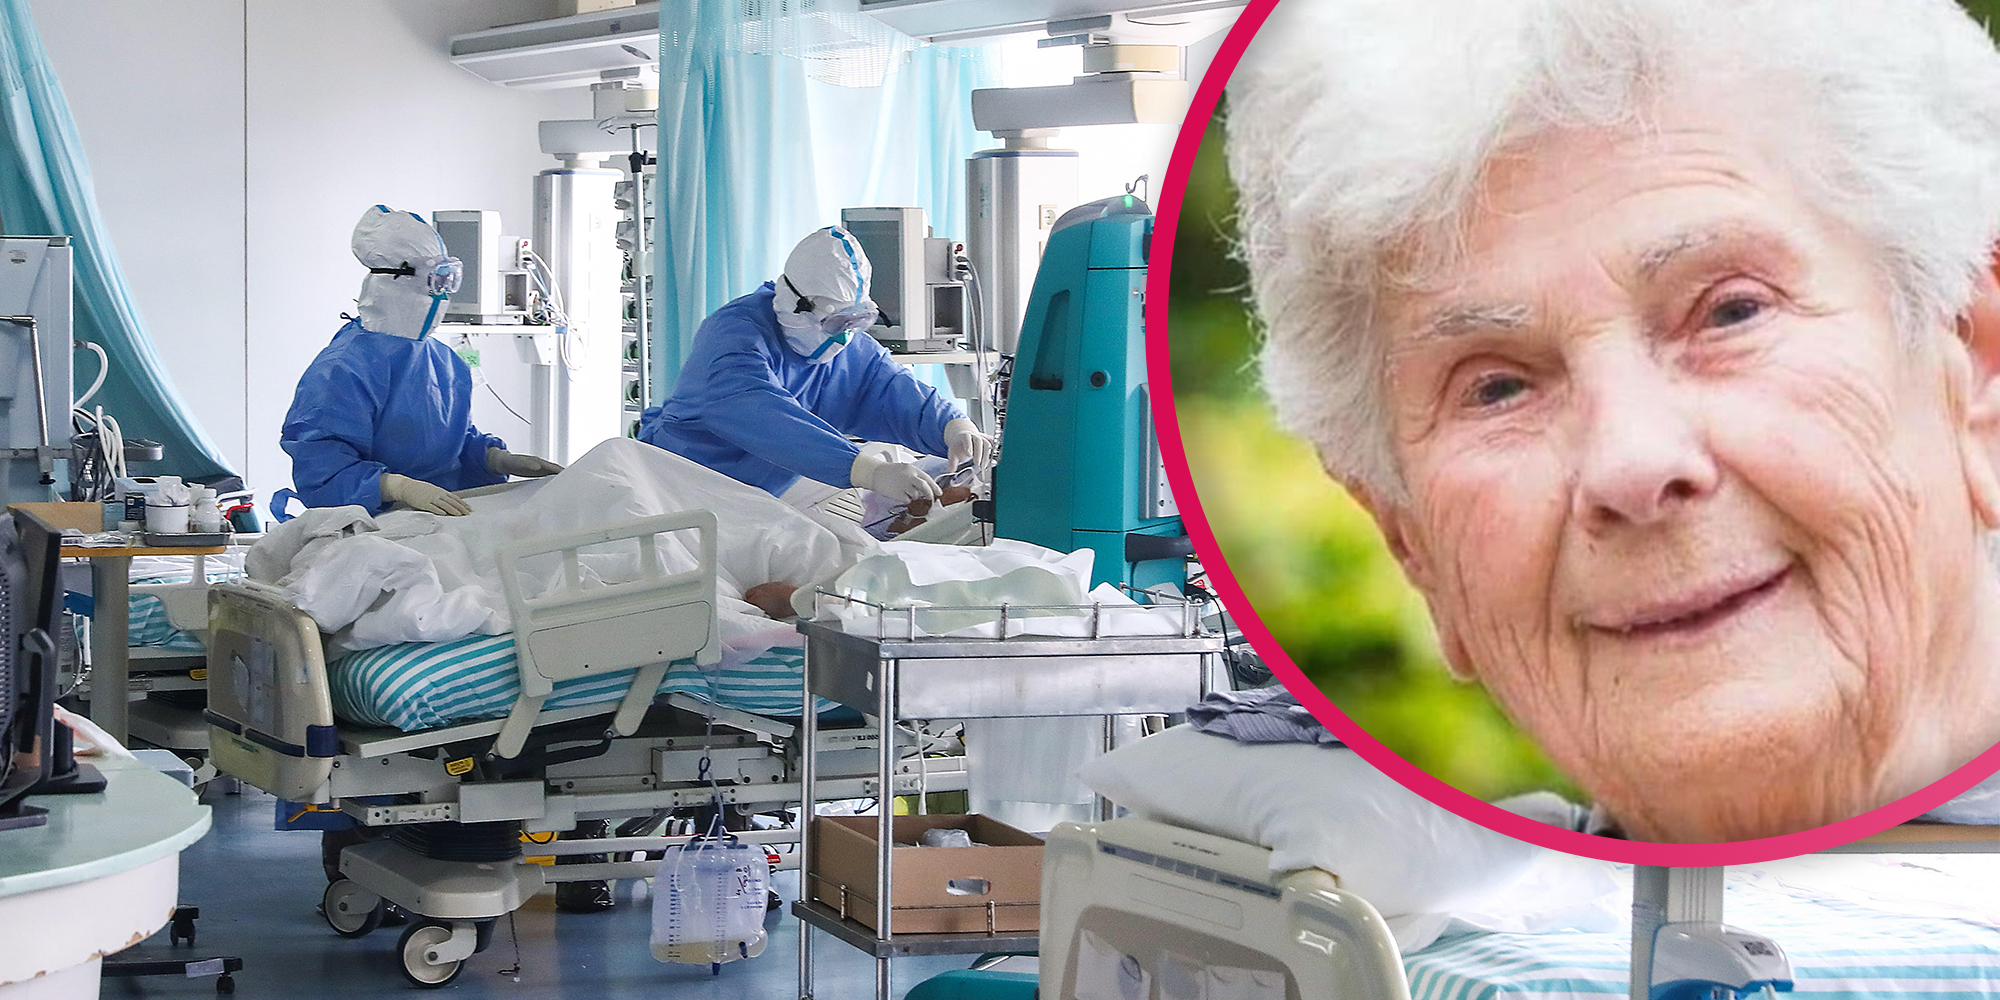 Coronavirus: 90-year-old woman dies after telling doctors to keep ventilator for someone younger